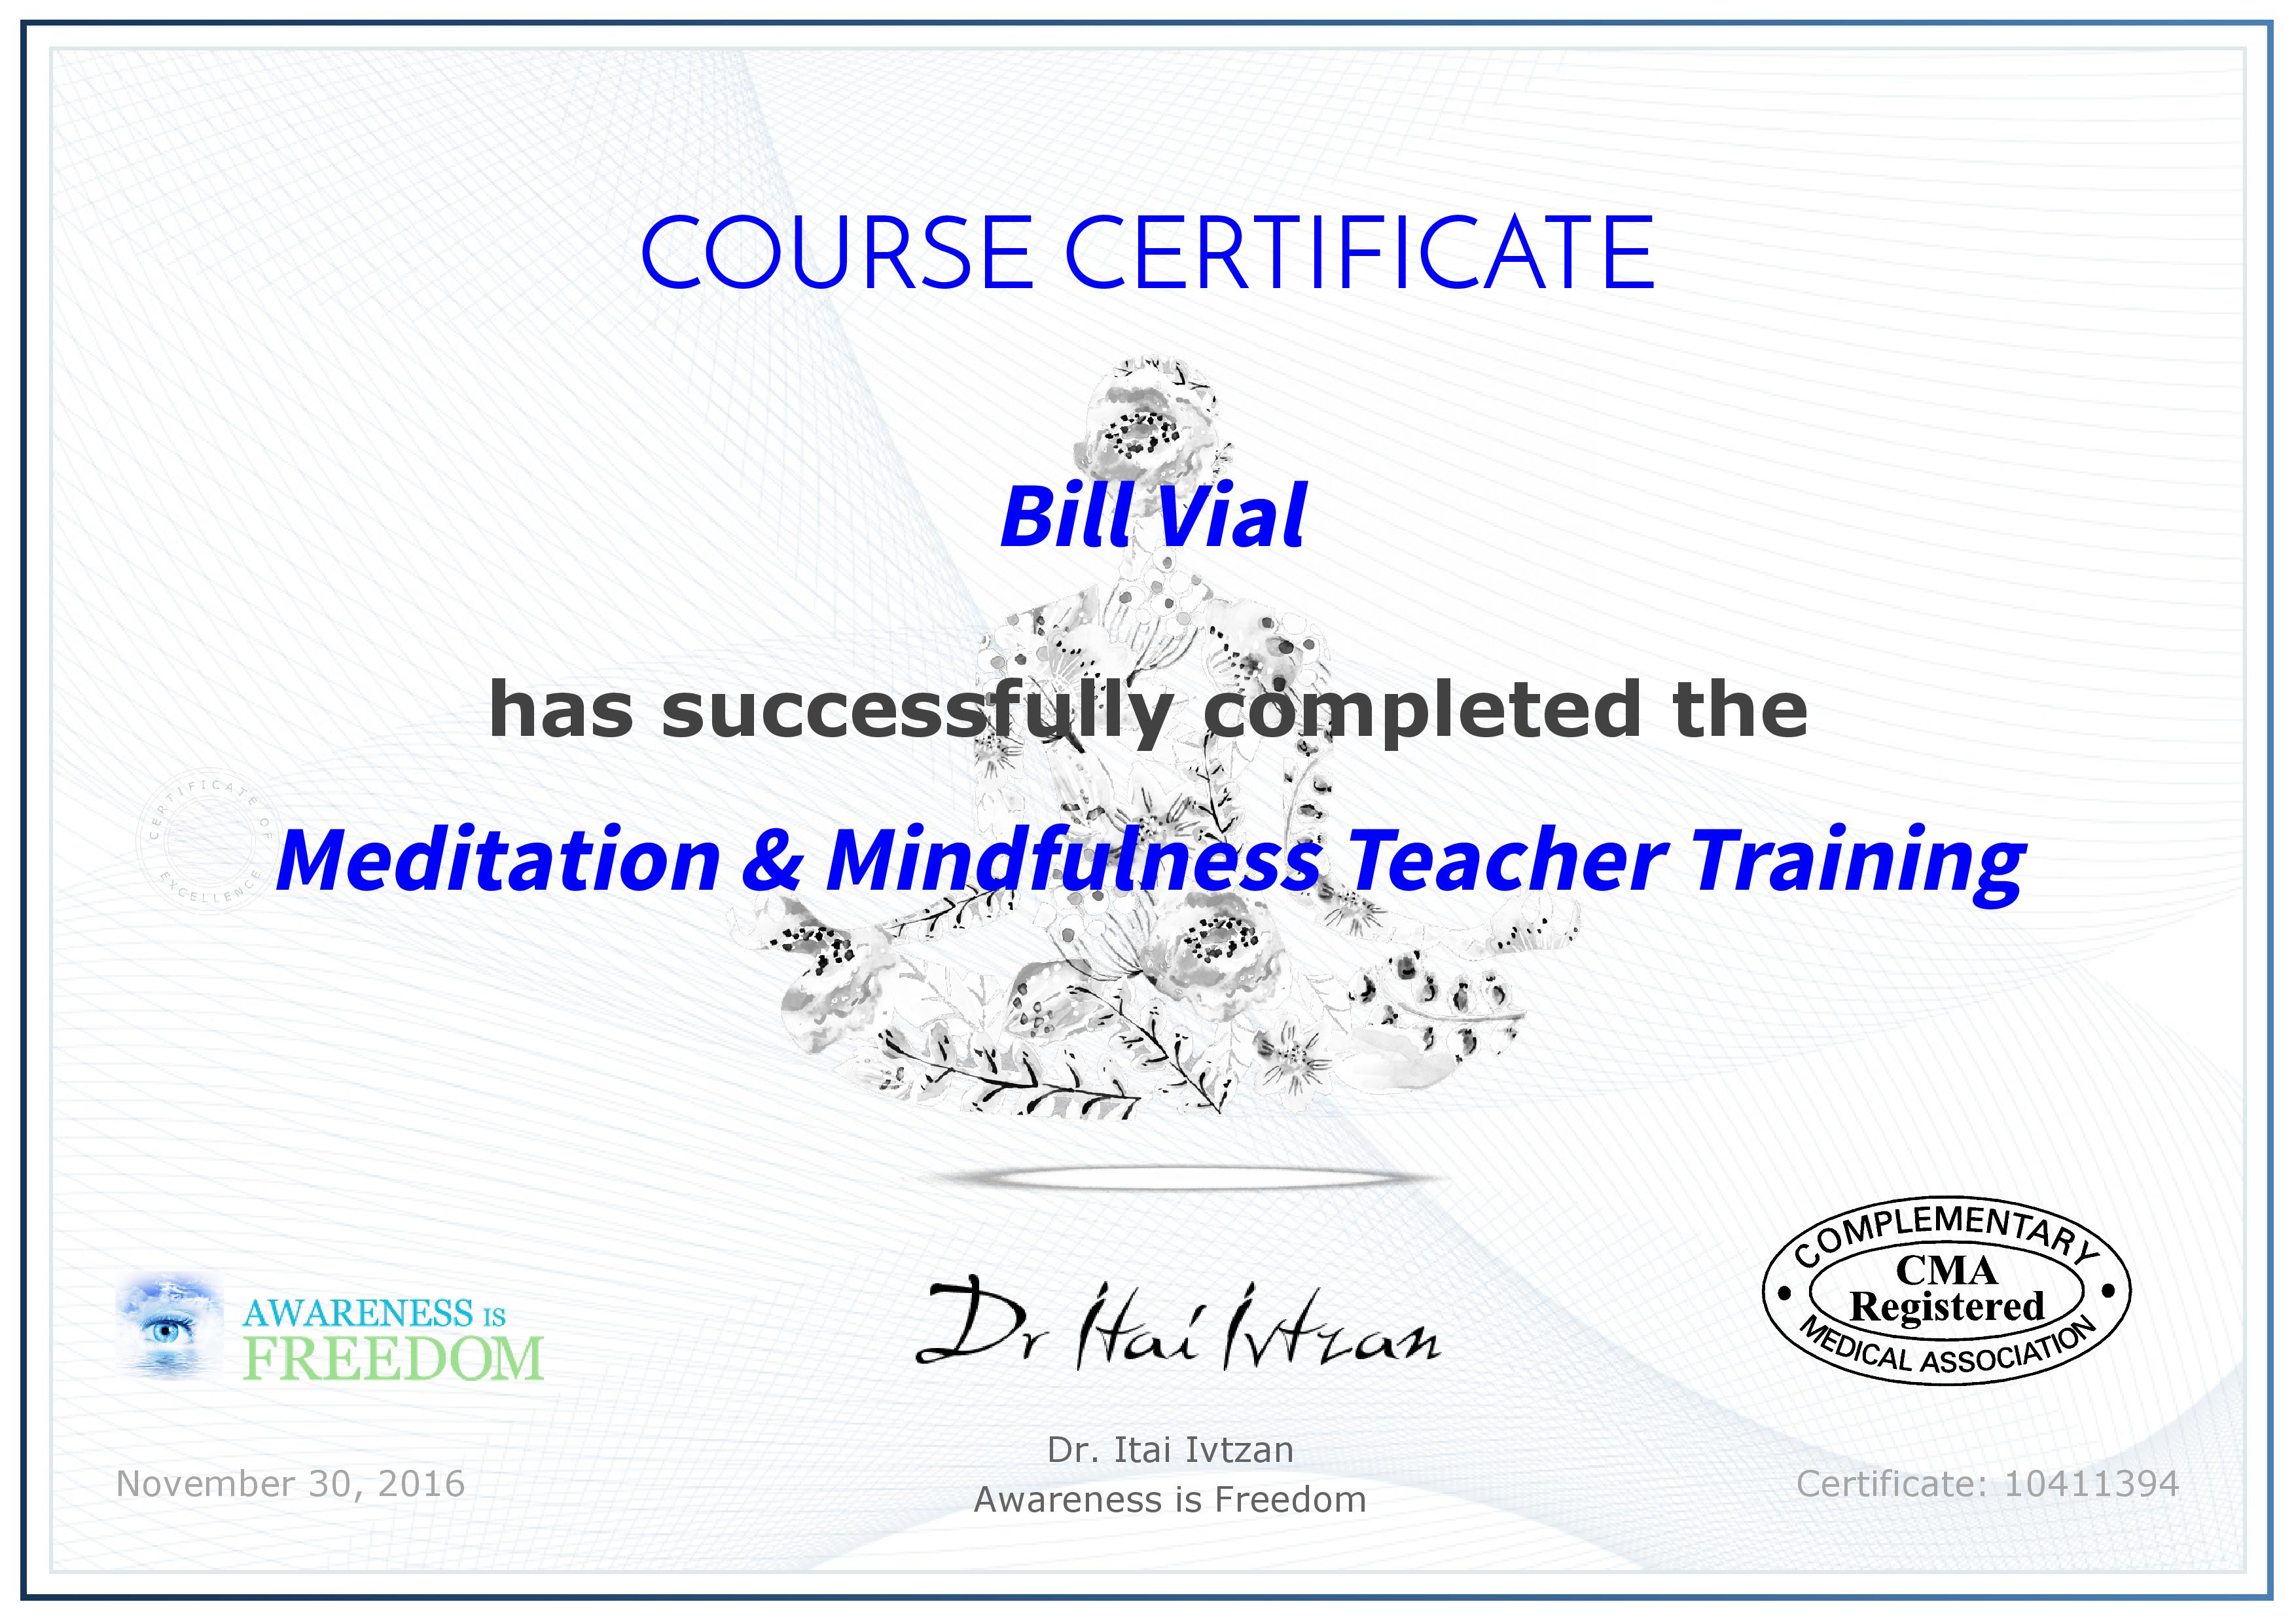 Meditation and mindfulness teacher training once you have completed the course you will receive a formal certificate indicating you are a certified meditation and mindfulness teacher xflitez Gallery